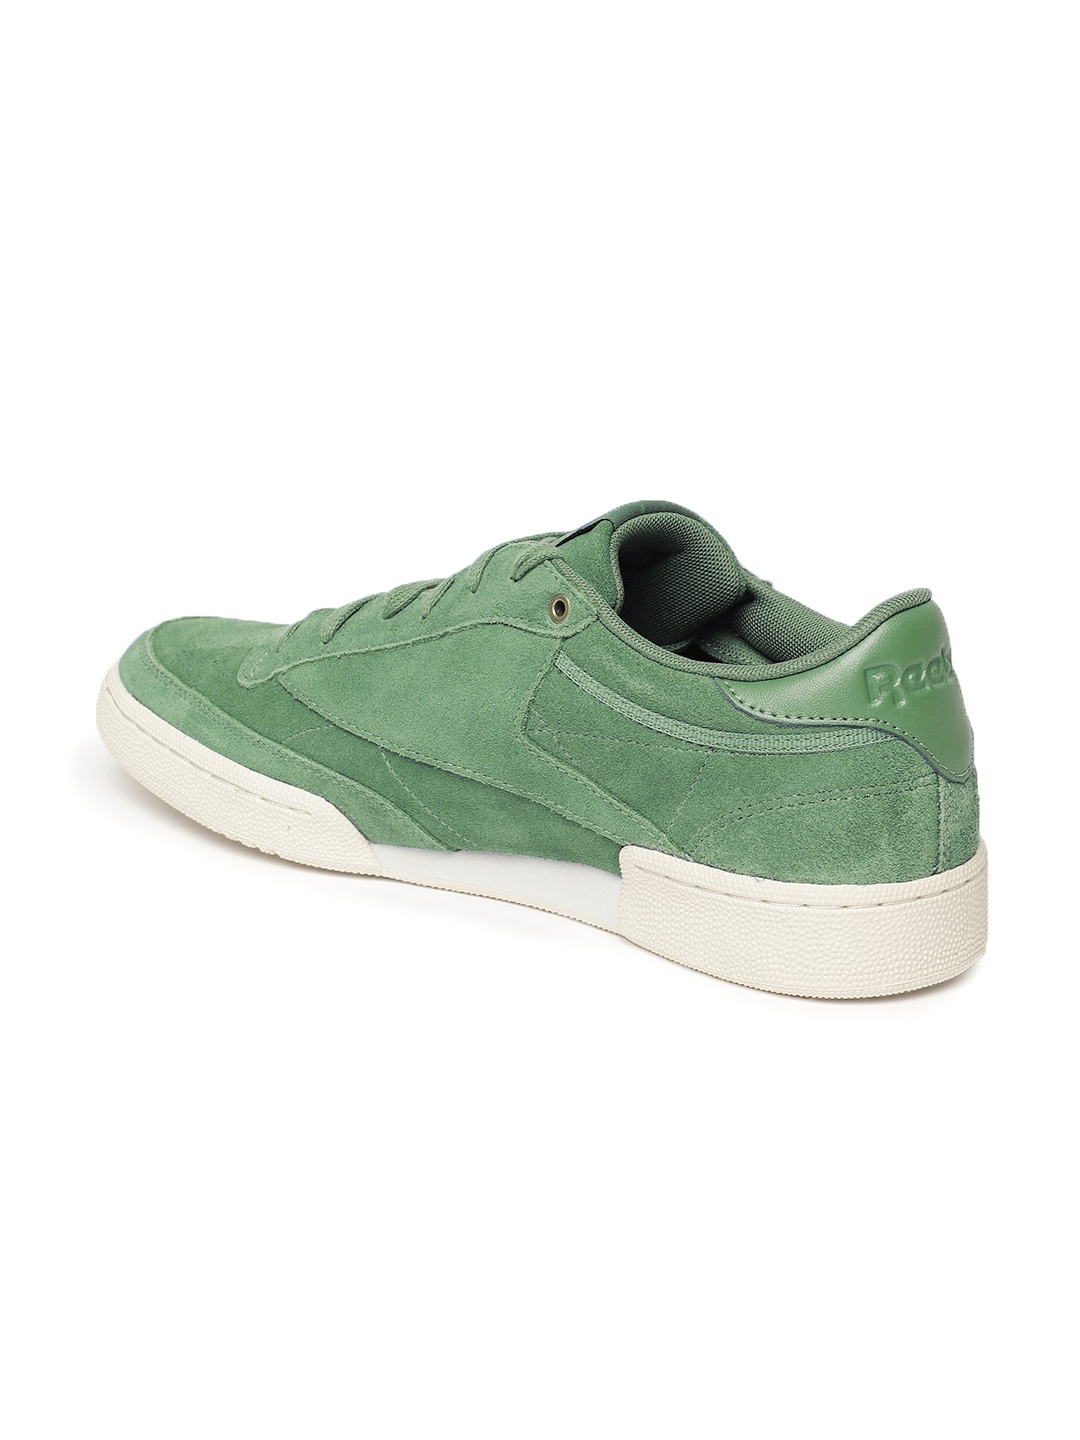 10ed2b46e30 Buy Reebok Classic Men CLUB C 85 MCC Green Suede Sneakers - Casual ...